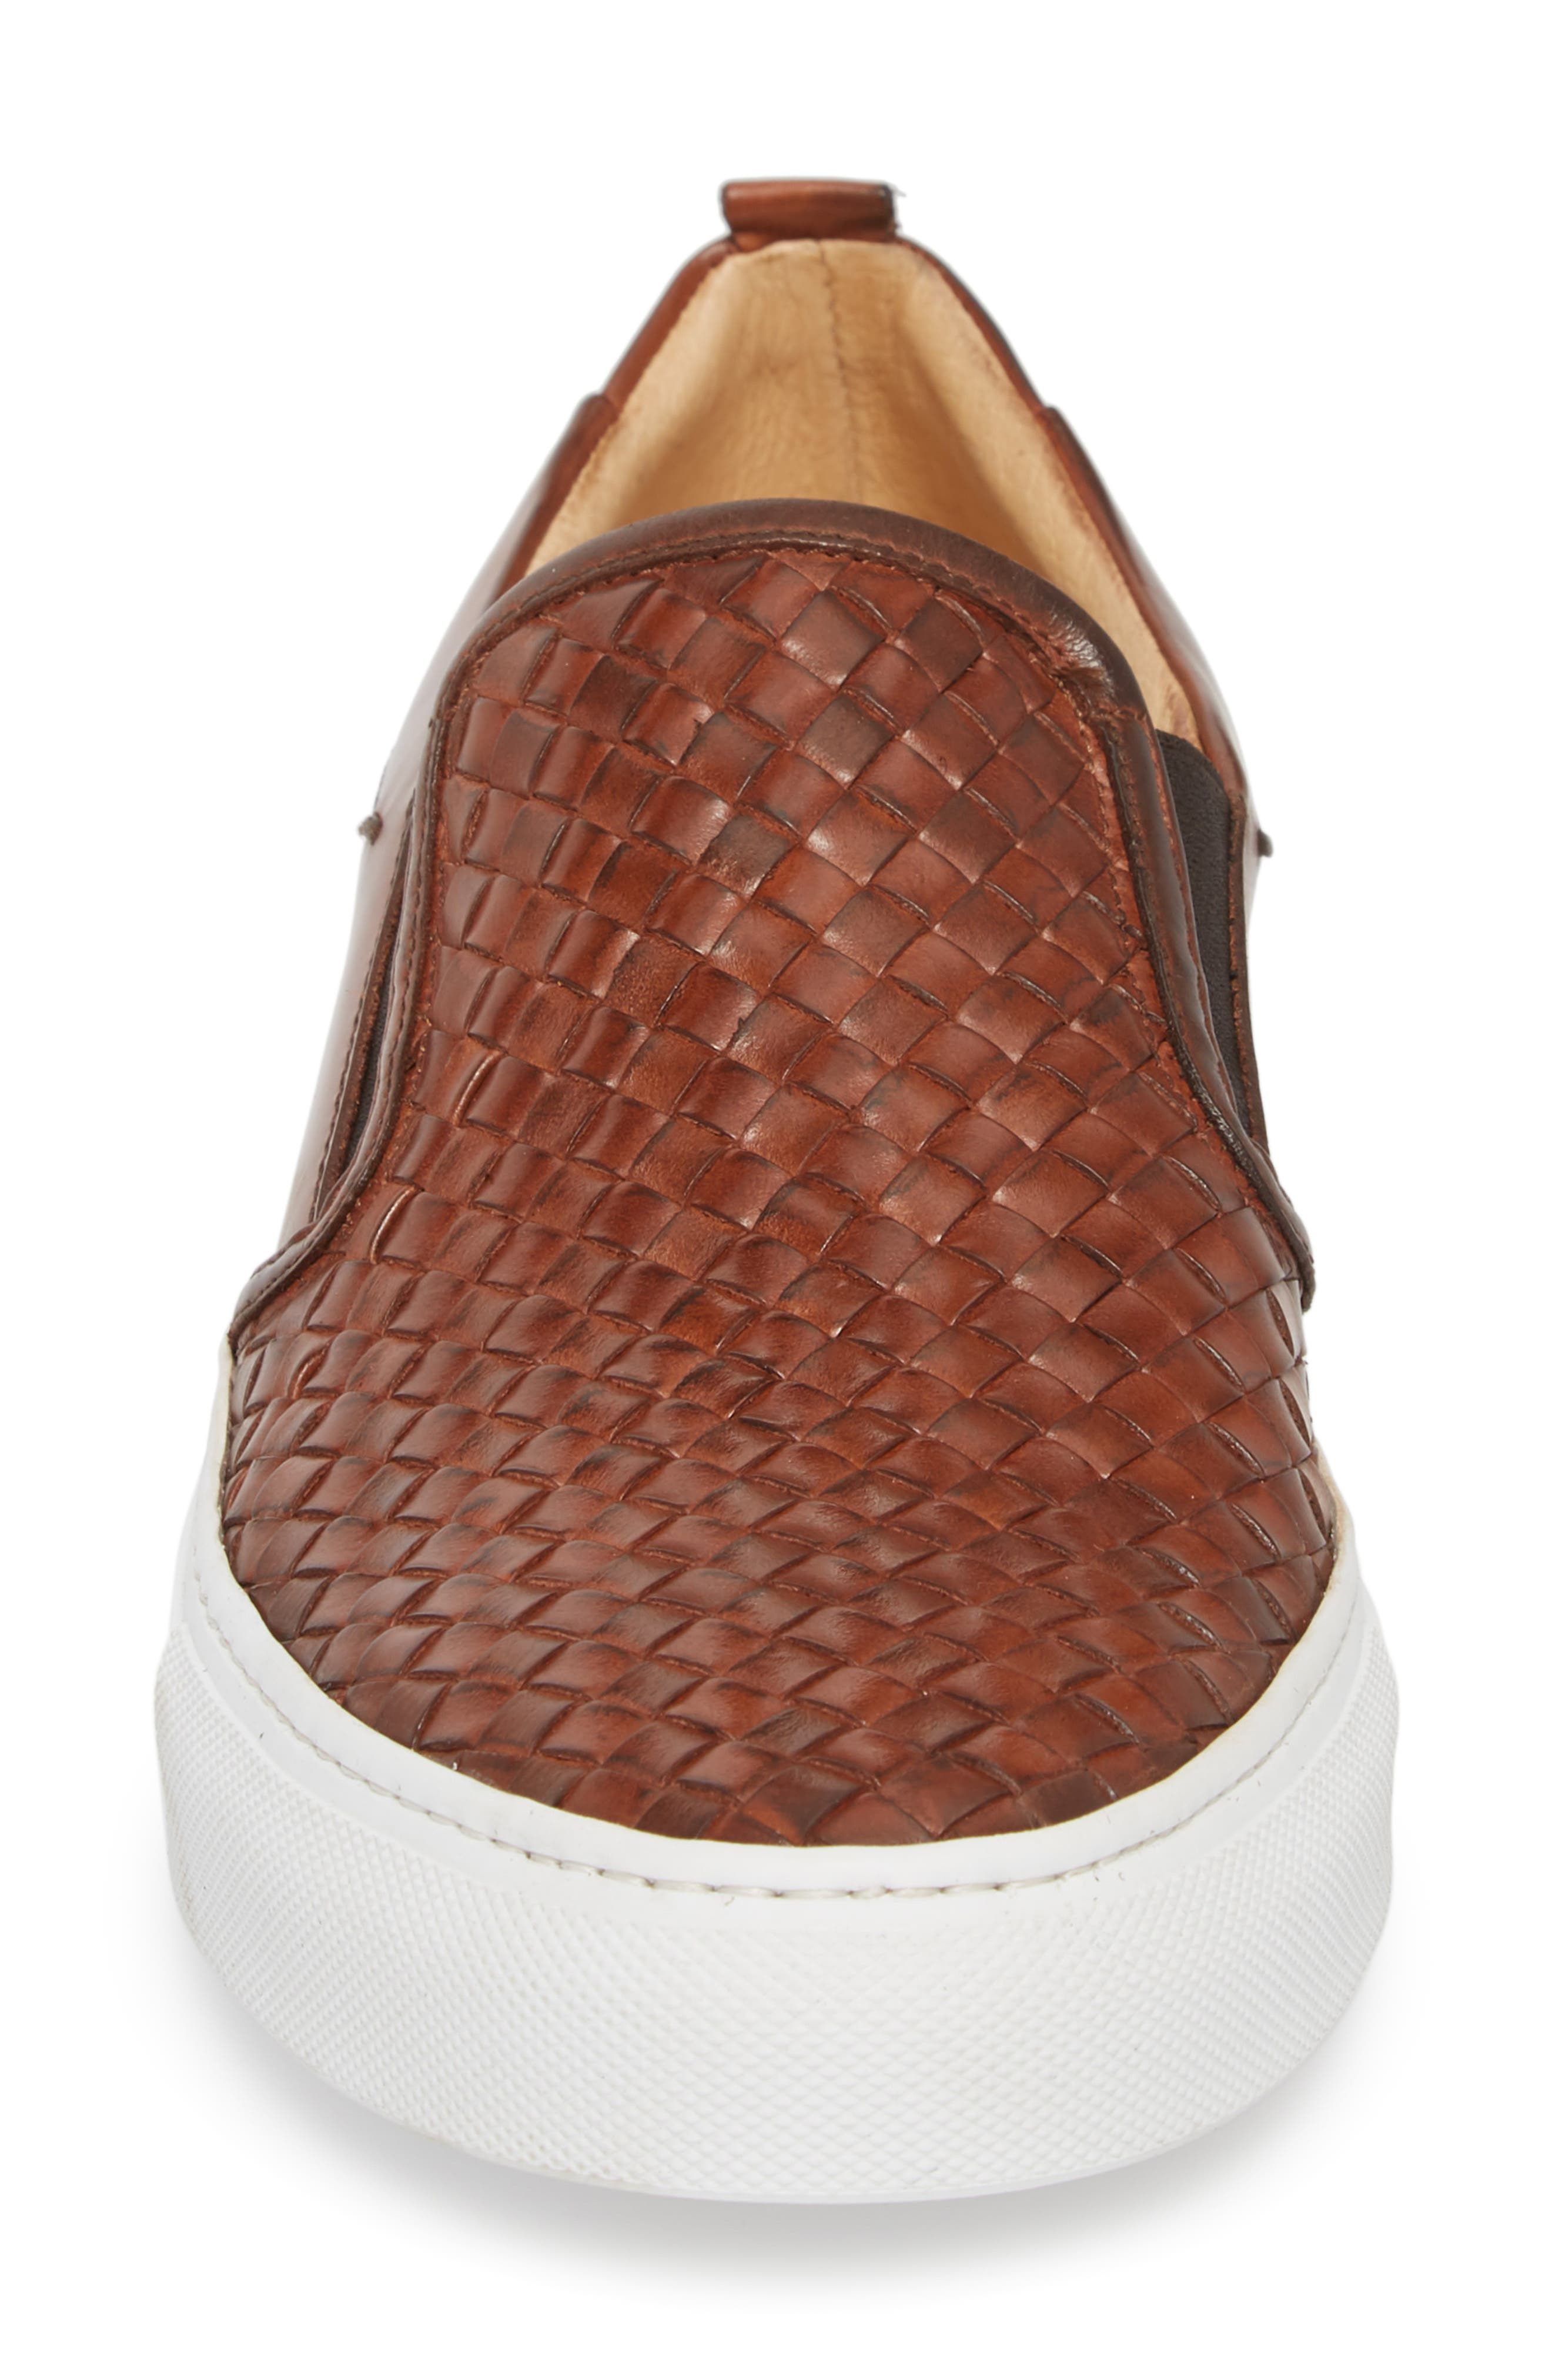 Grifyn Woven Slip-On Sneaker,                             Alternate thumbnail 4, color,                             Cognac Leather